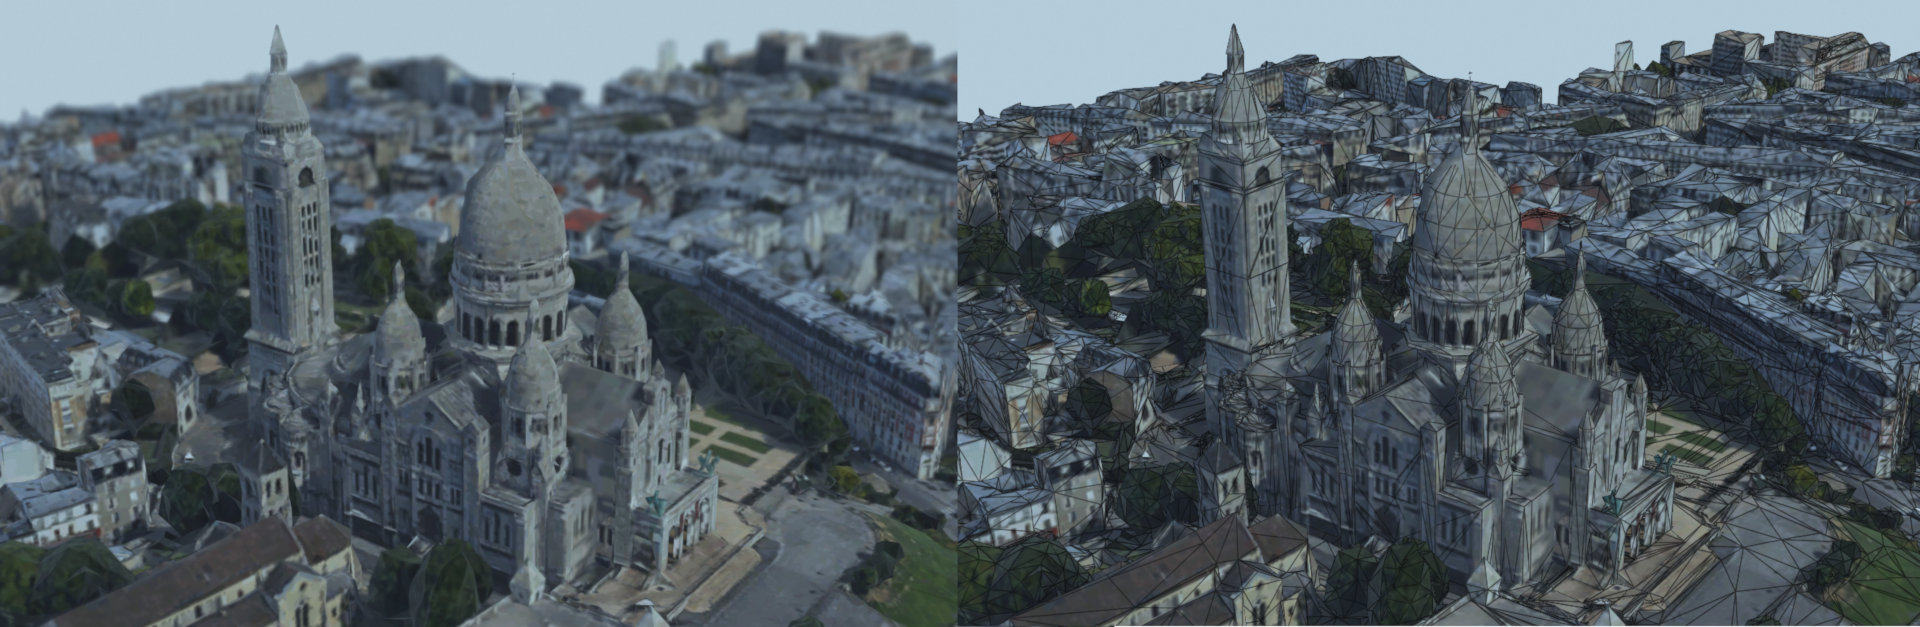 Sacré-coeur imported in Blender